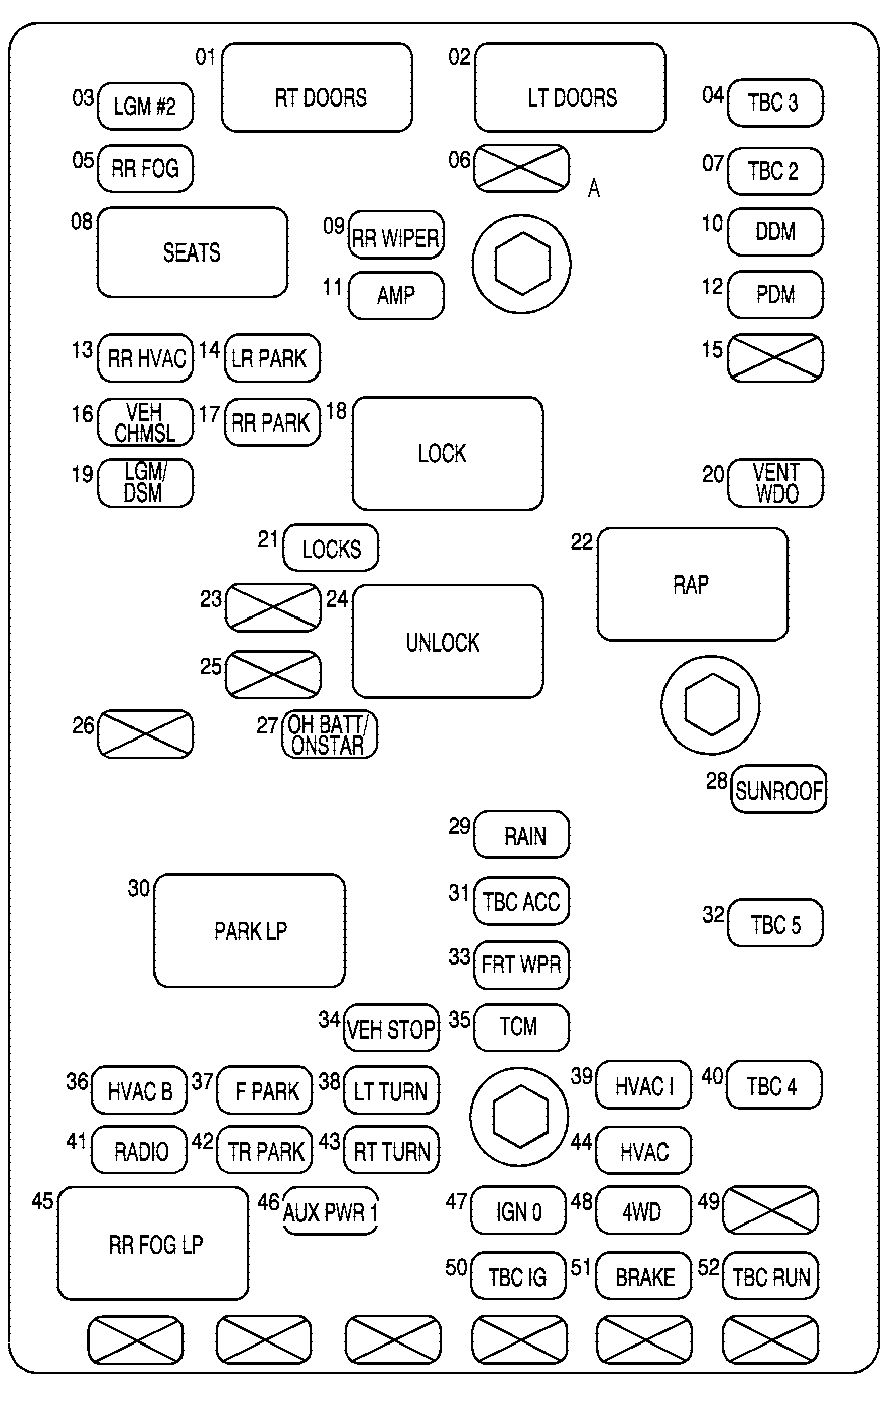 gmc envoy 2006 fuse box diagram auto genius rh autogenius info 2006 GMC Sierra Fuse Box Diagram 2002 GMC Sierra 1500 Fuse Box Diagram